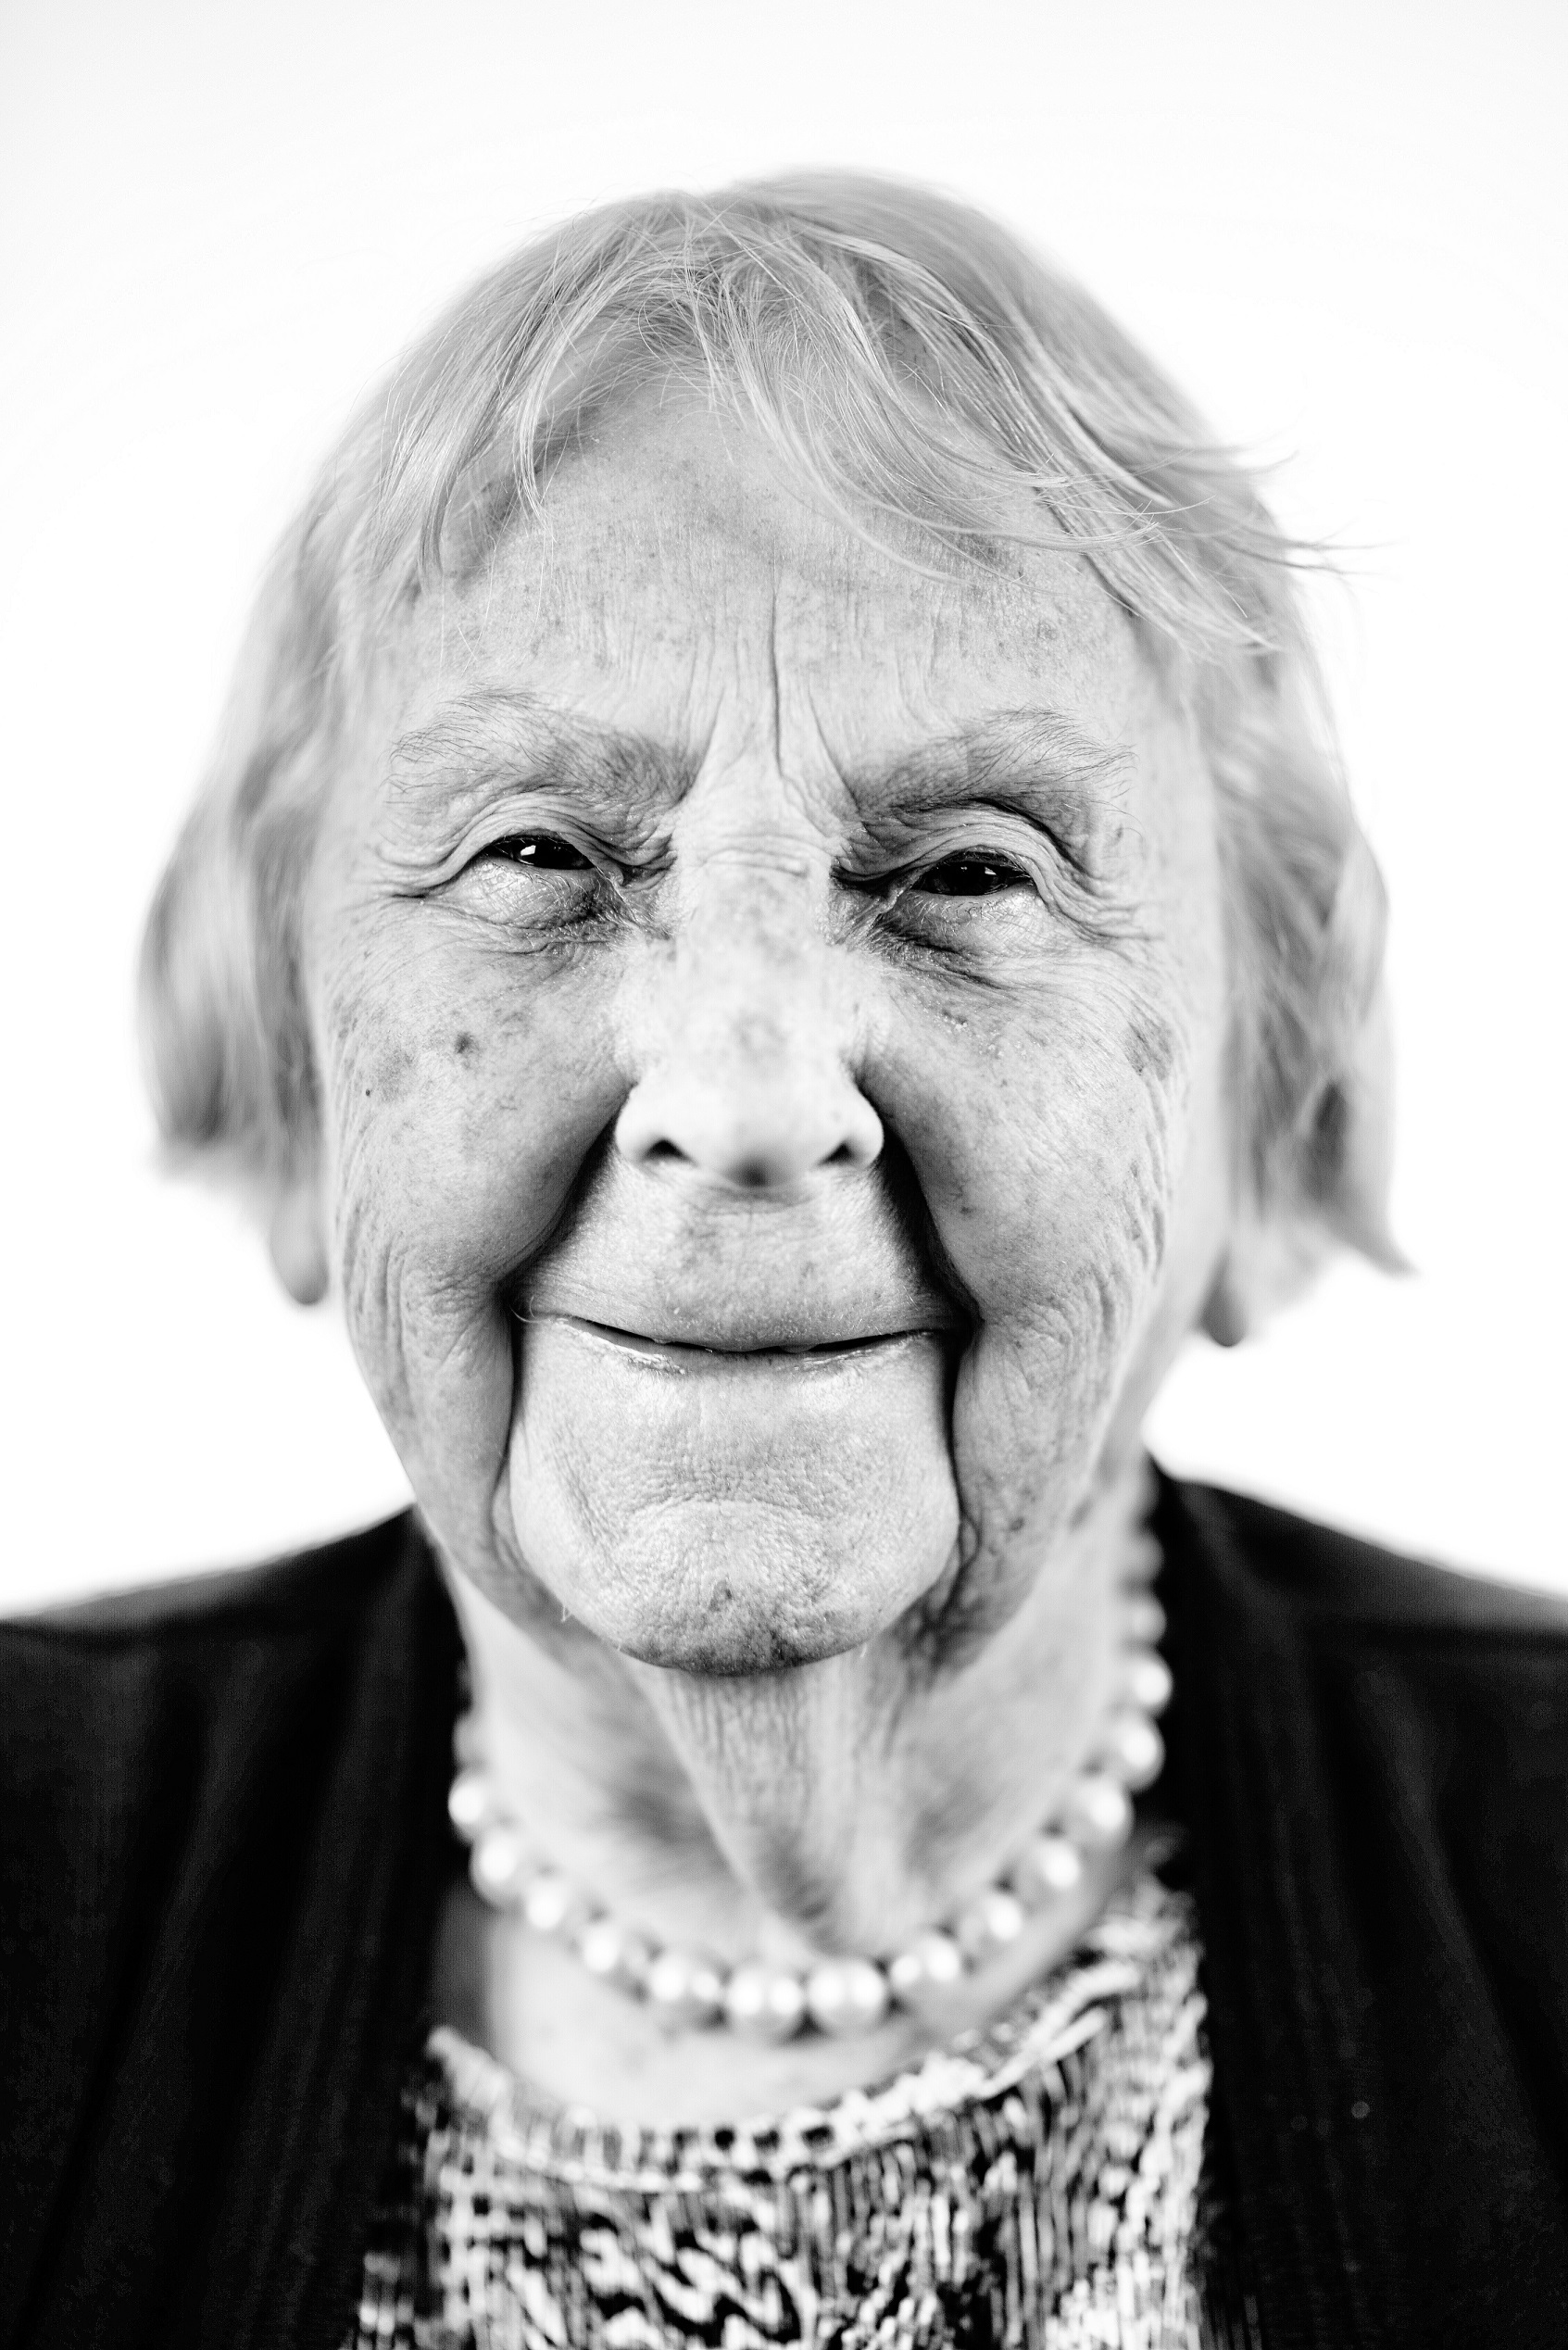 Phyllis, aged 93. Photo: Joe Low